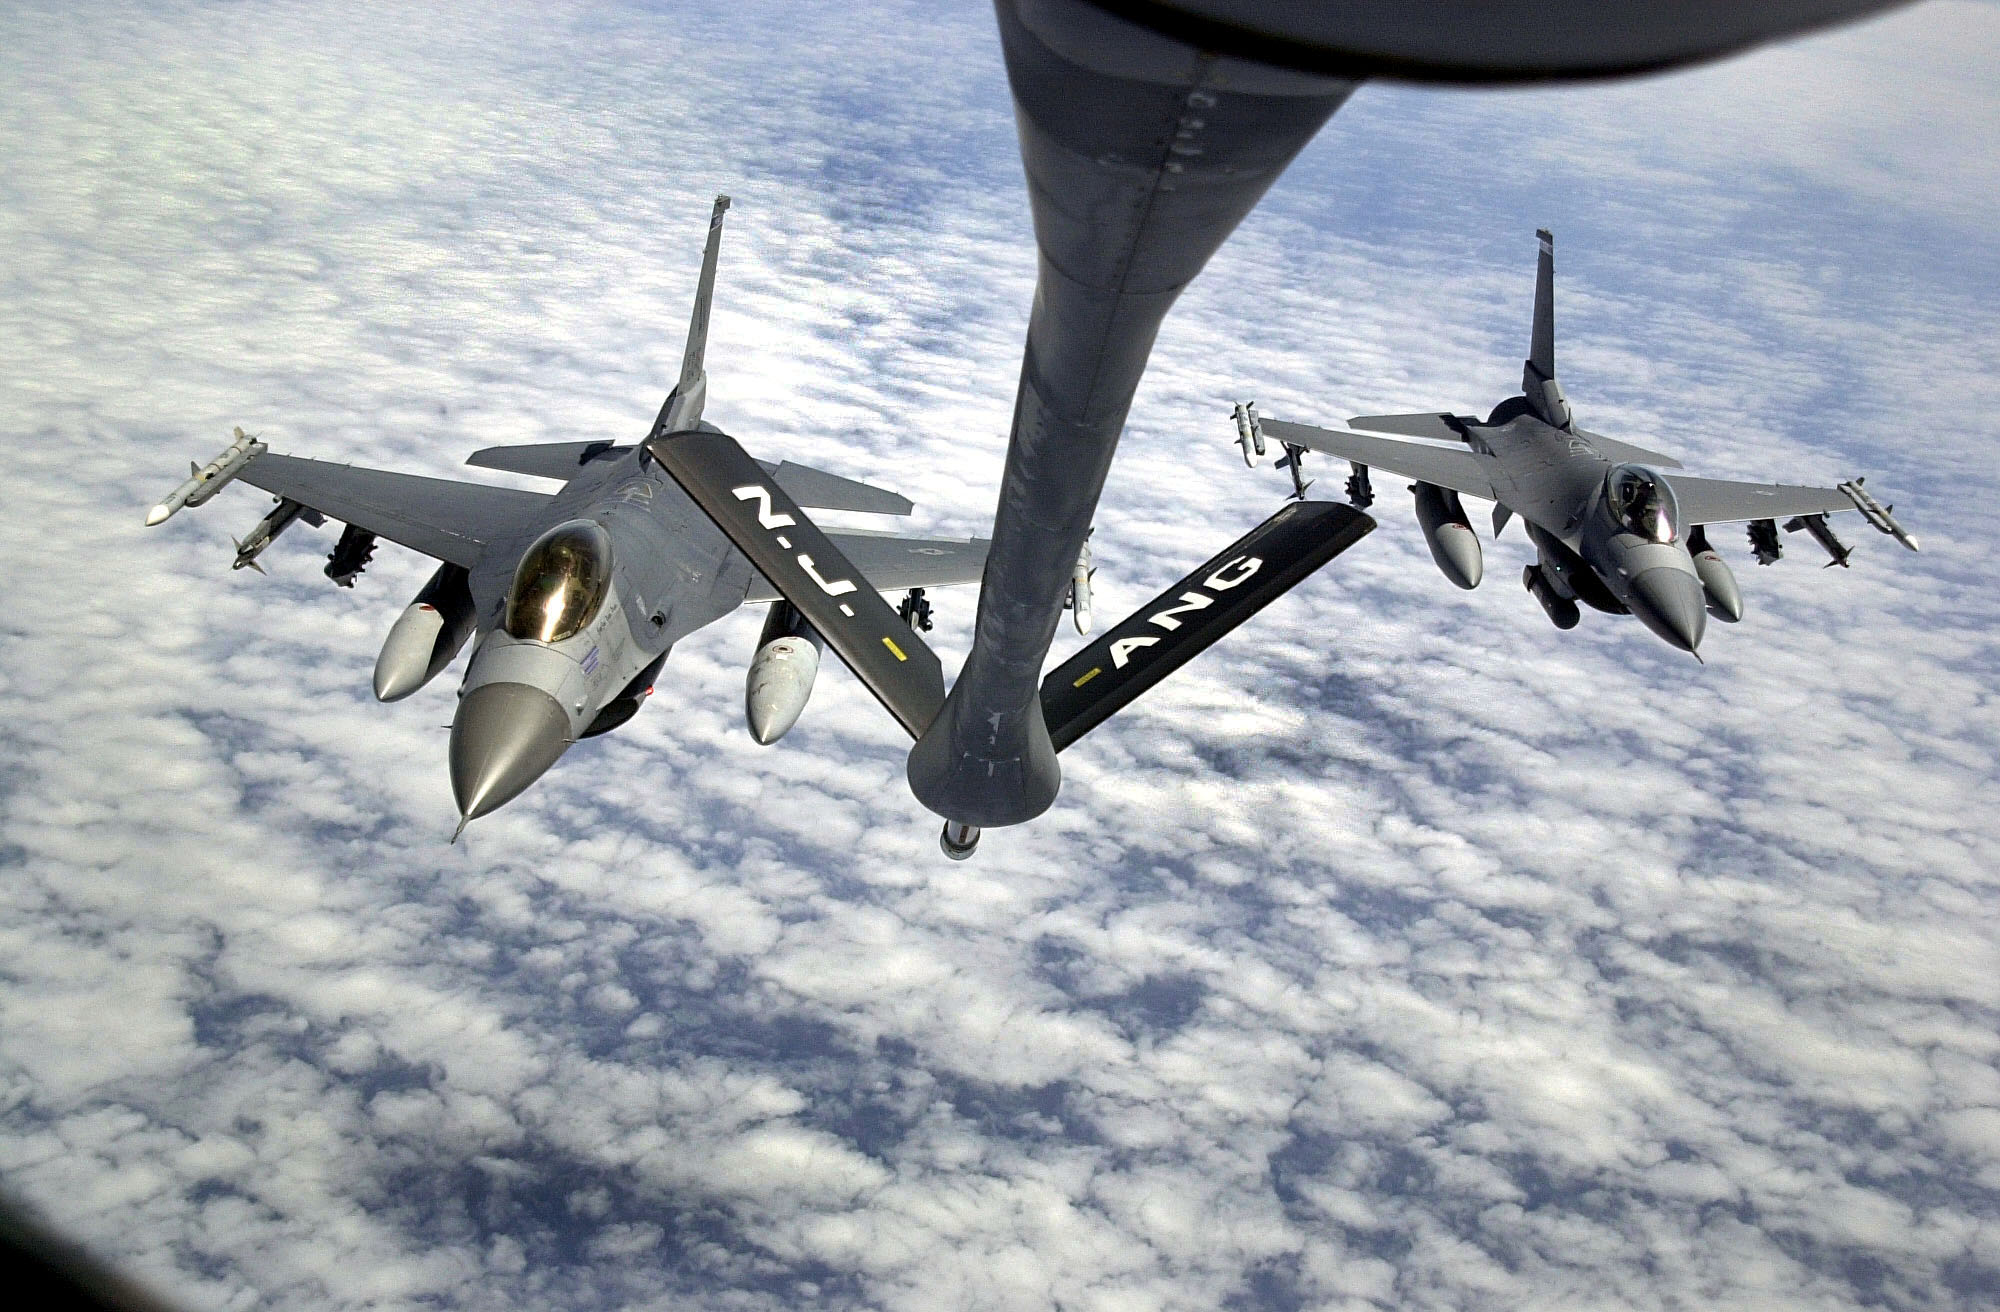 https://upload.wikimedia.org/wikipedia/commons/a/ae/F-16s_from_Aviano_AB_drop_away_from_the_boom_of_a_KC-135_from_the_108th_Air_Refueling_Wing.jpg